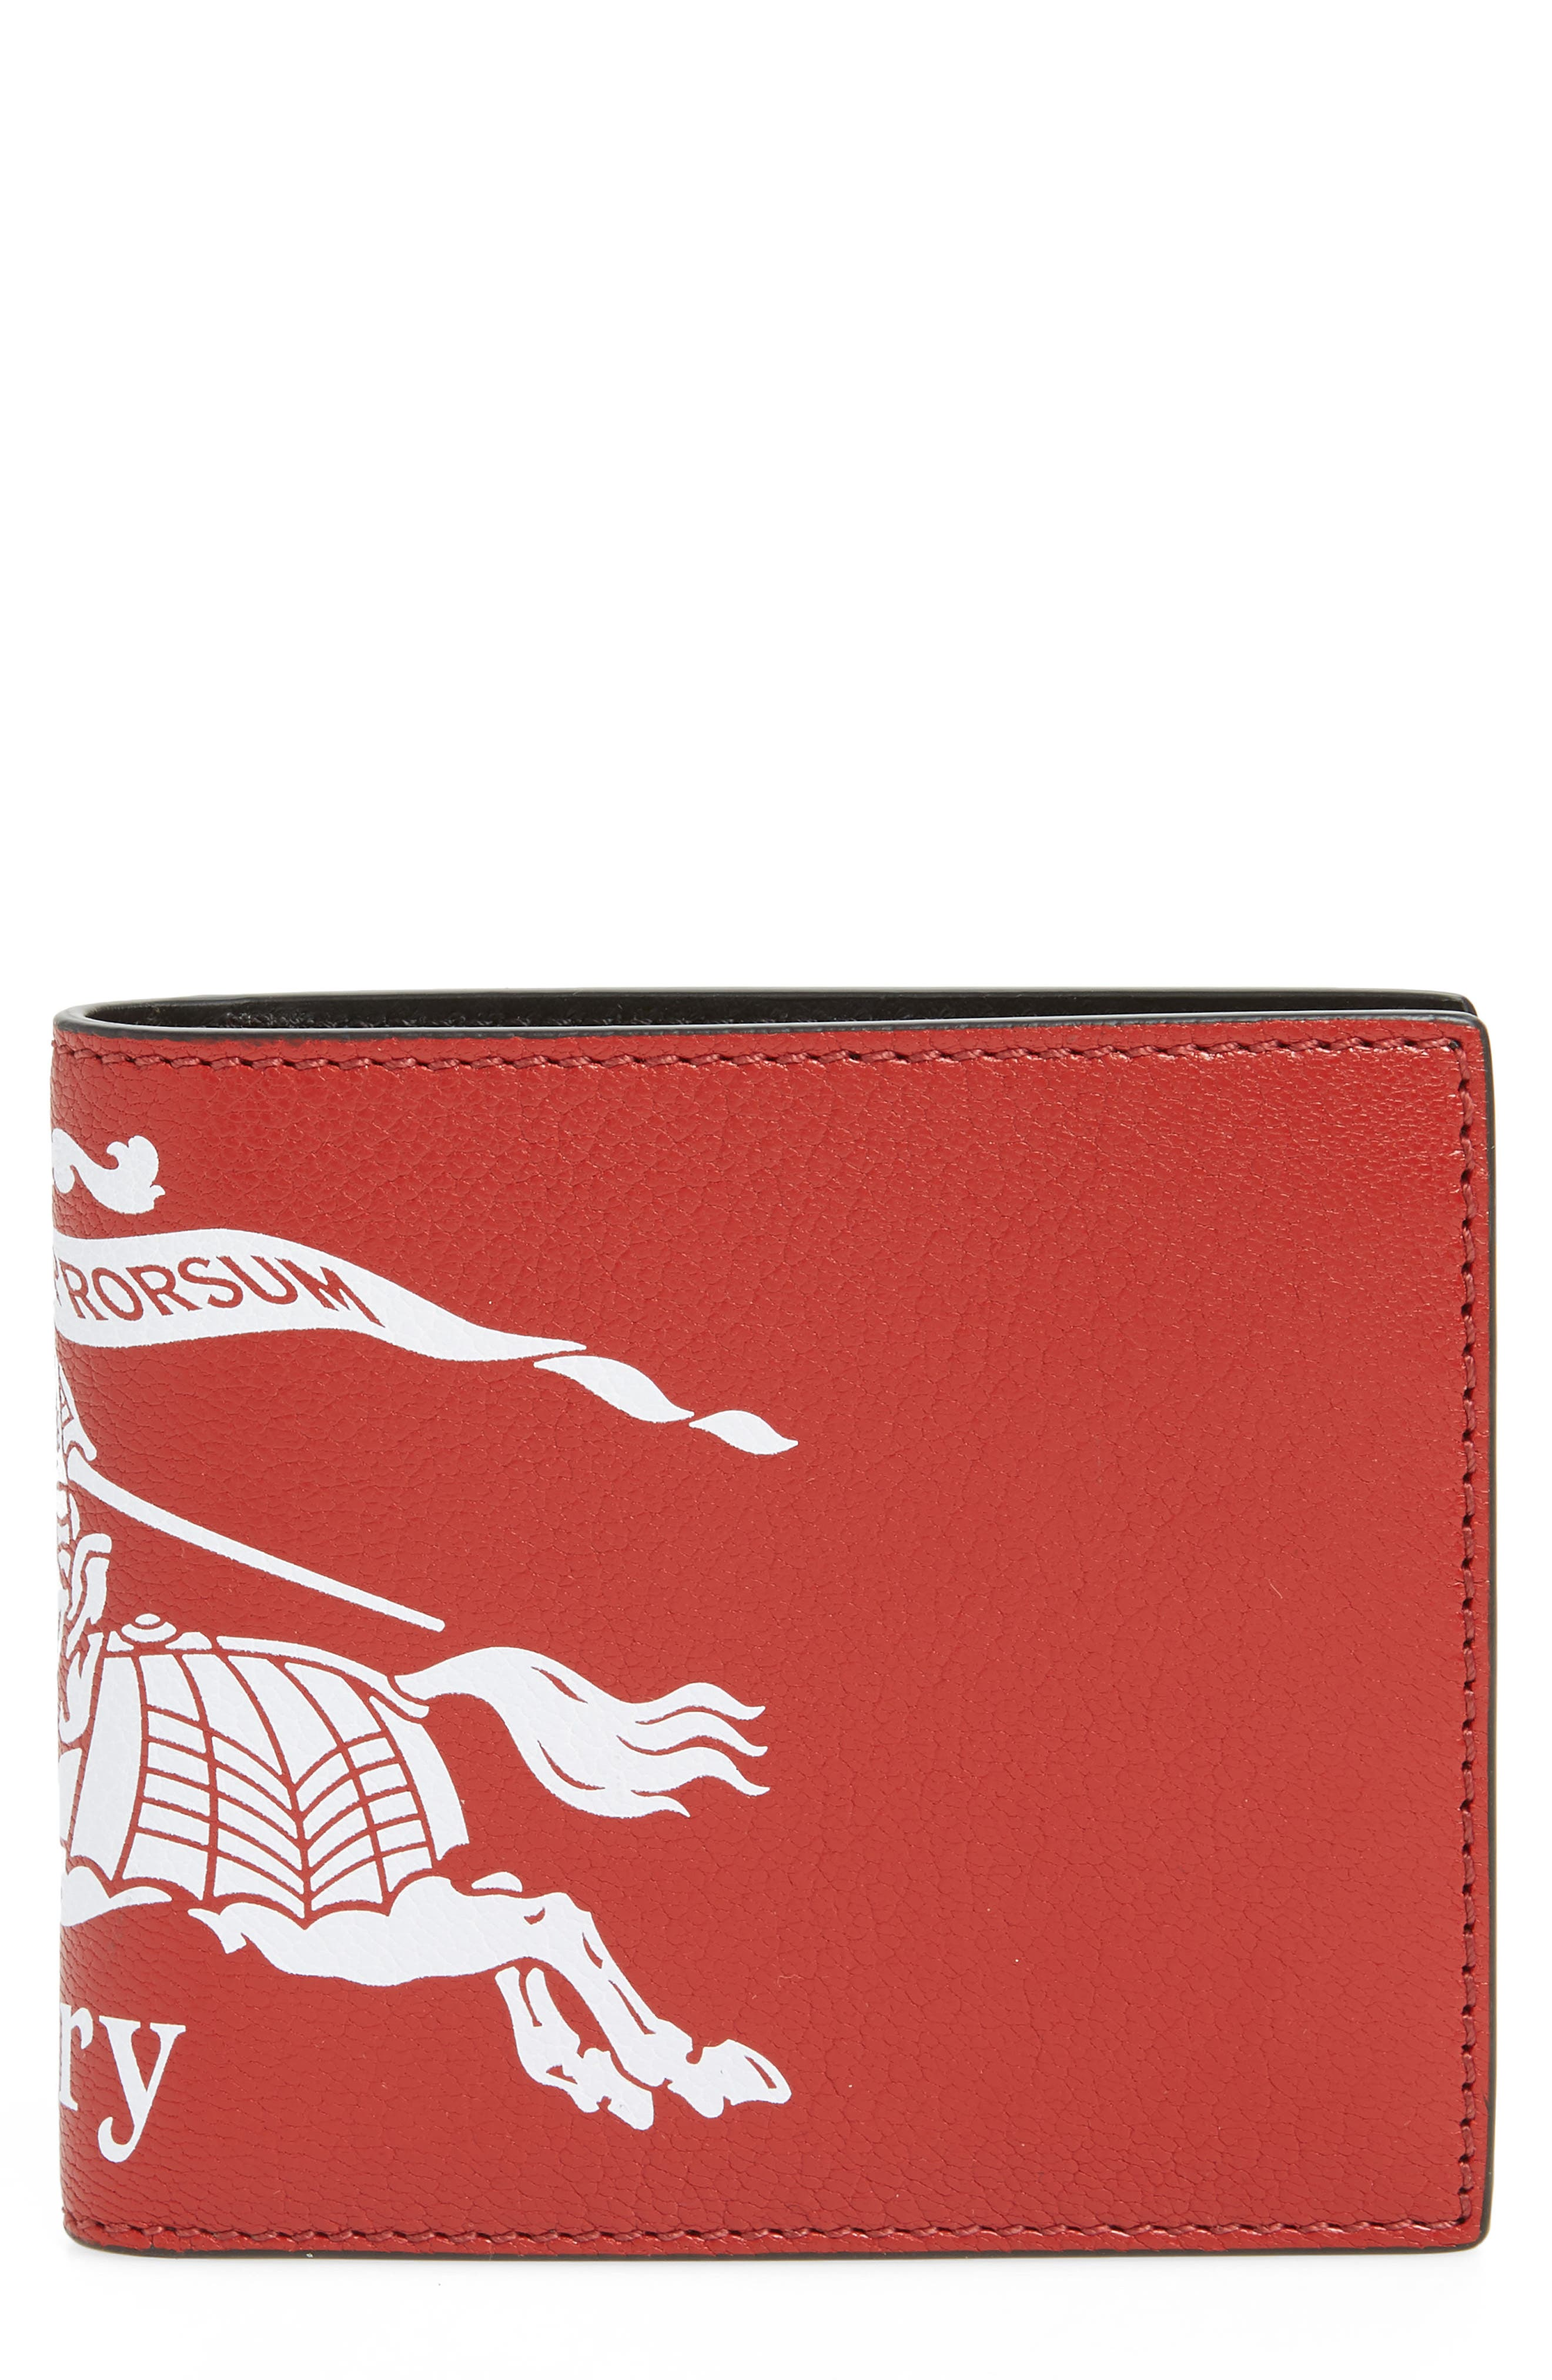 BURBERRY Crest Print Leather Billfold, Main, color, RUST RED/BLACK